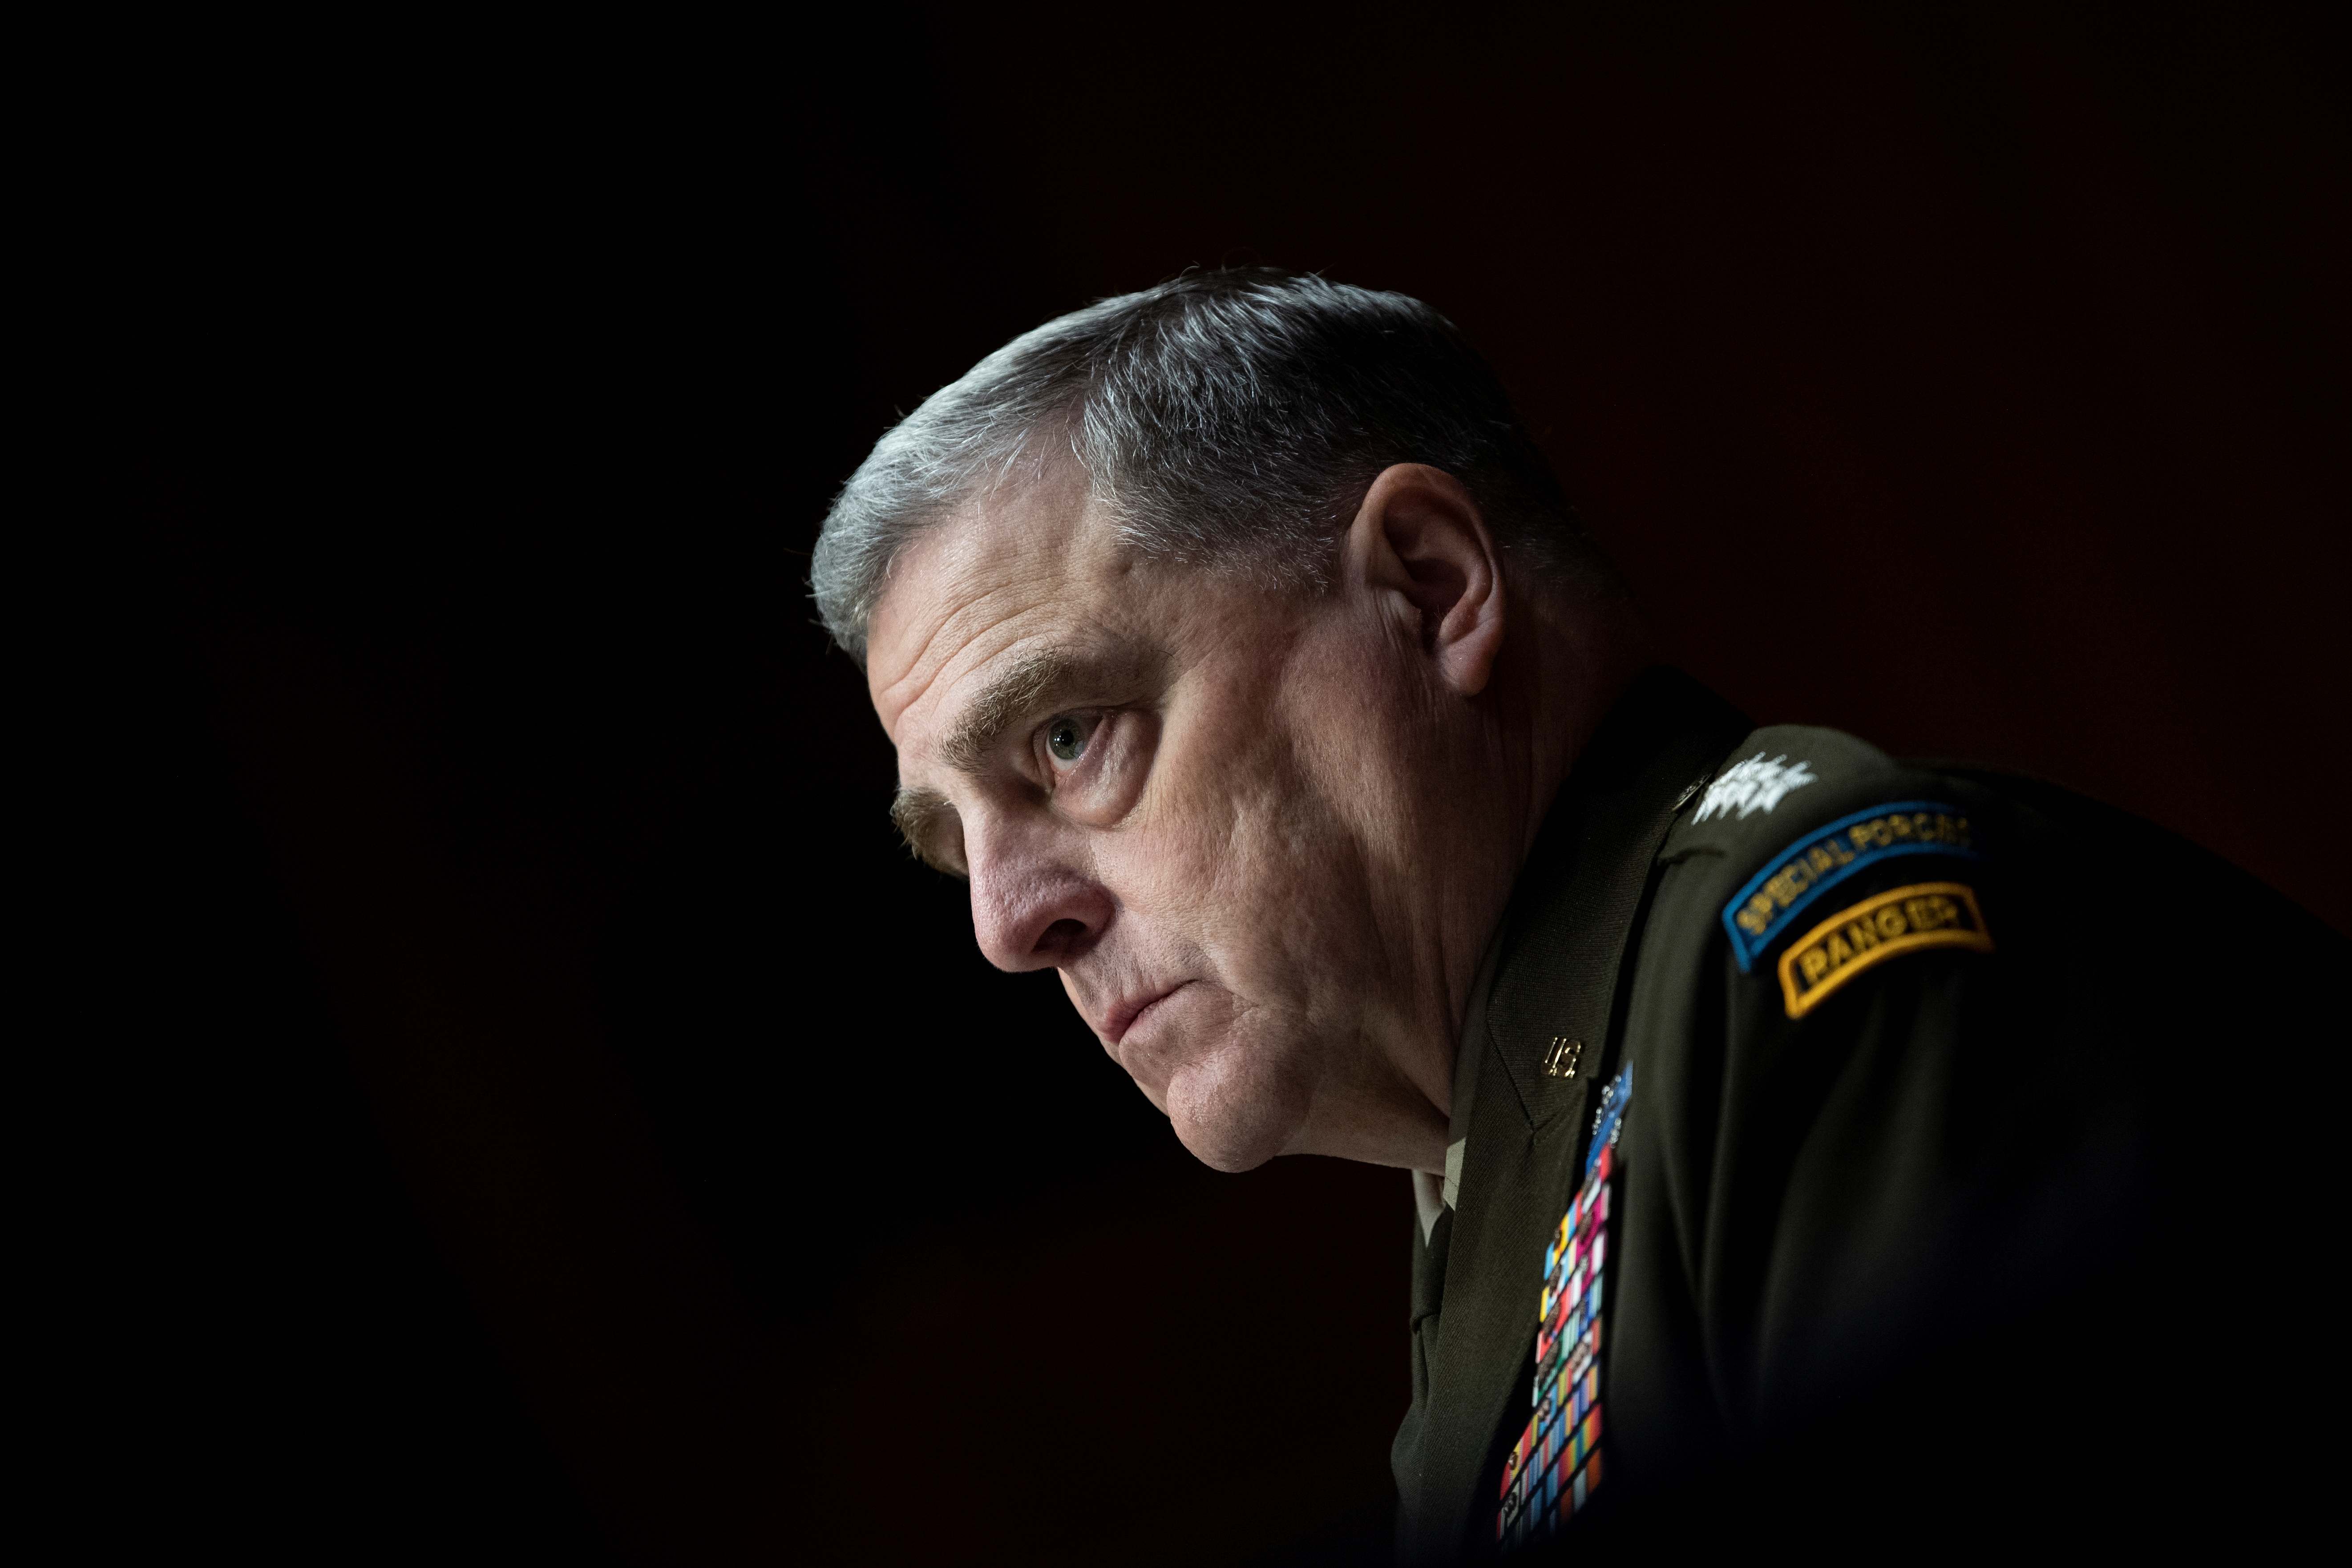 Chairman of the Joint Chiefs of Staff Gen. Mark Milley looks on during a Senate Appropriations Committee hearing in Washington, U.S. June 17, 2021. Caroline Brehman/Pool via Reuters